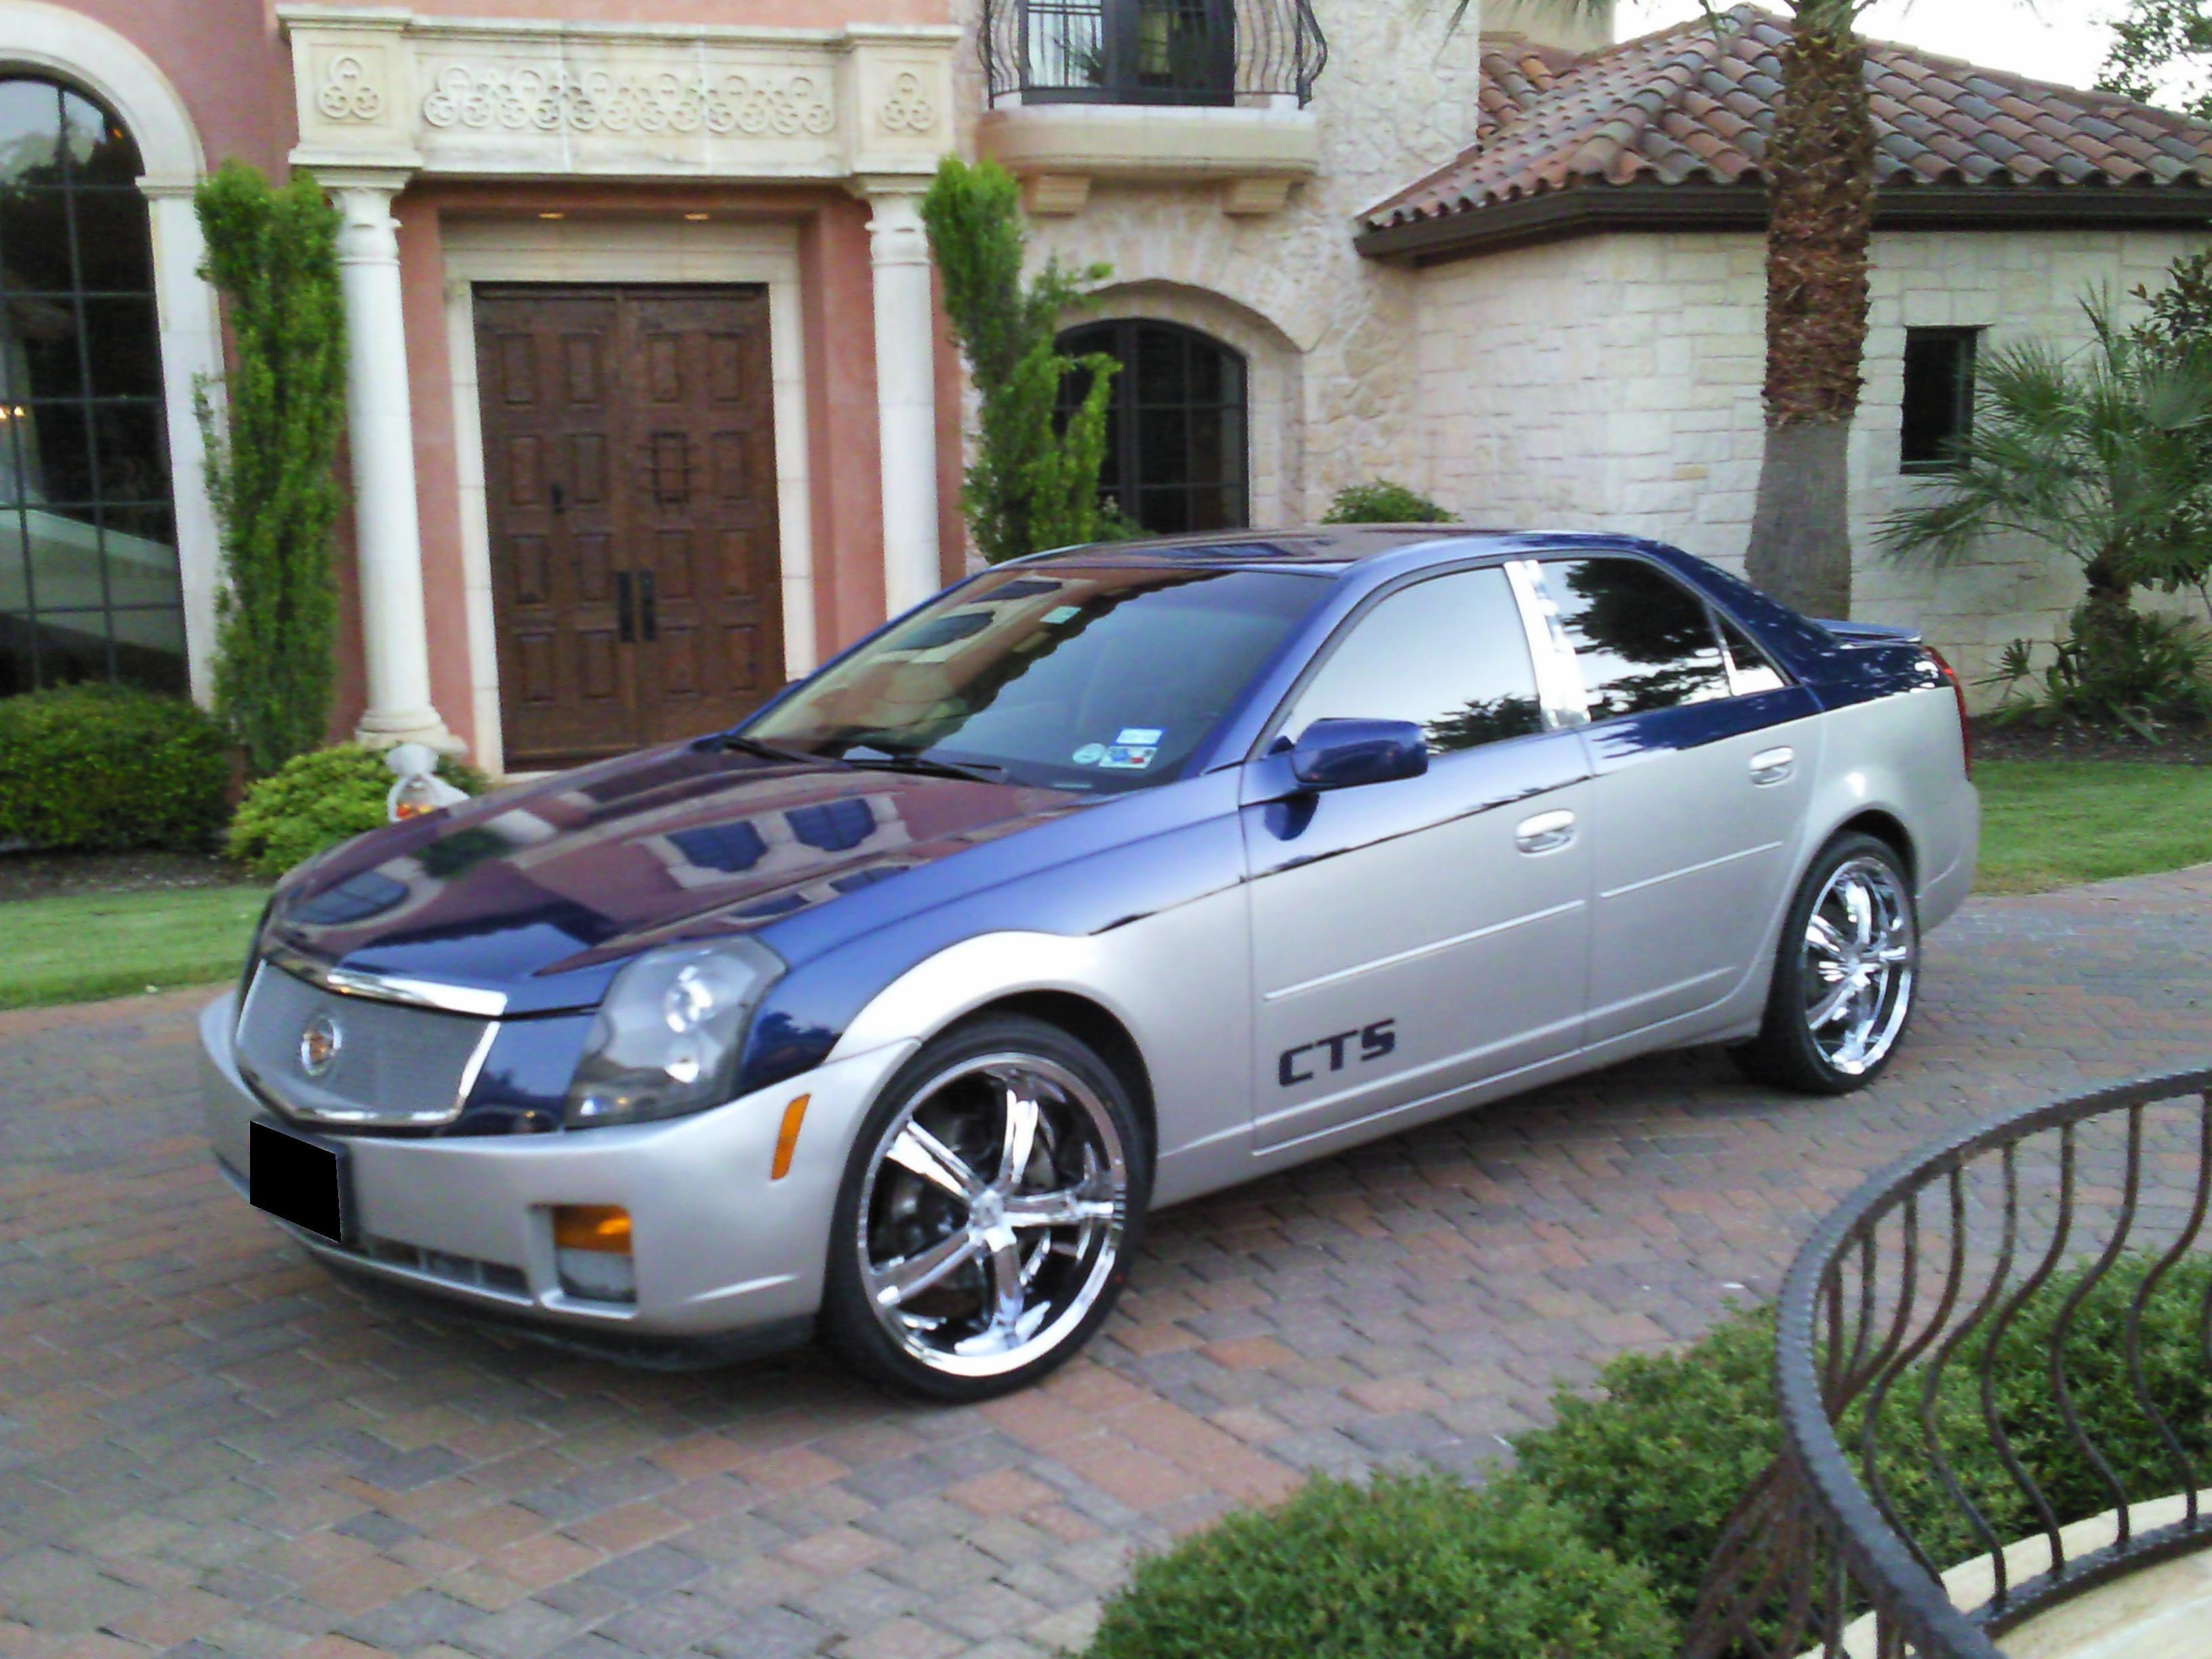 blucts 2003 cadillac cts specs photos modification info. Black Bedroom Furniture Sets. Home Design Ideas